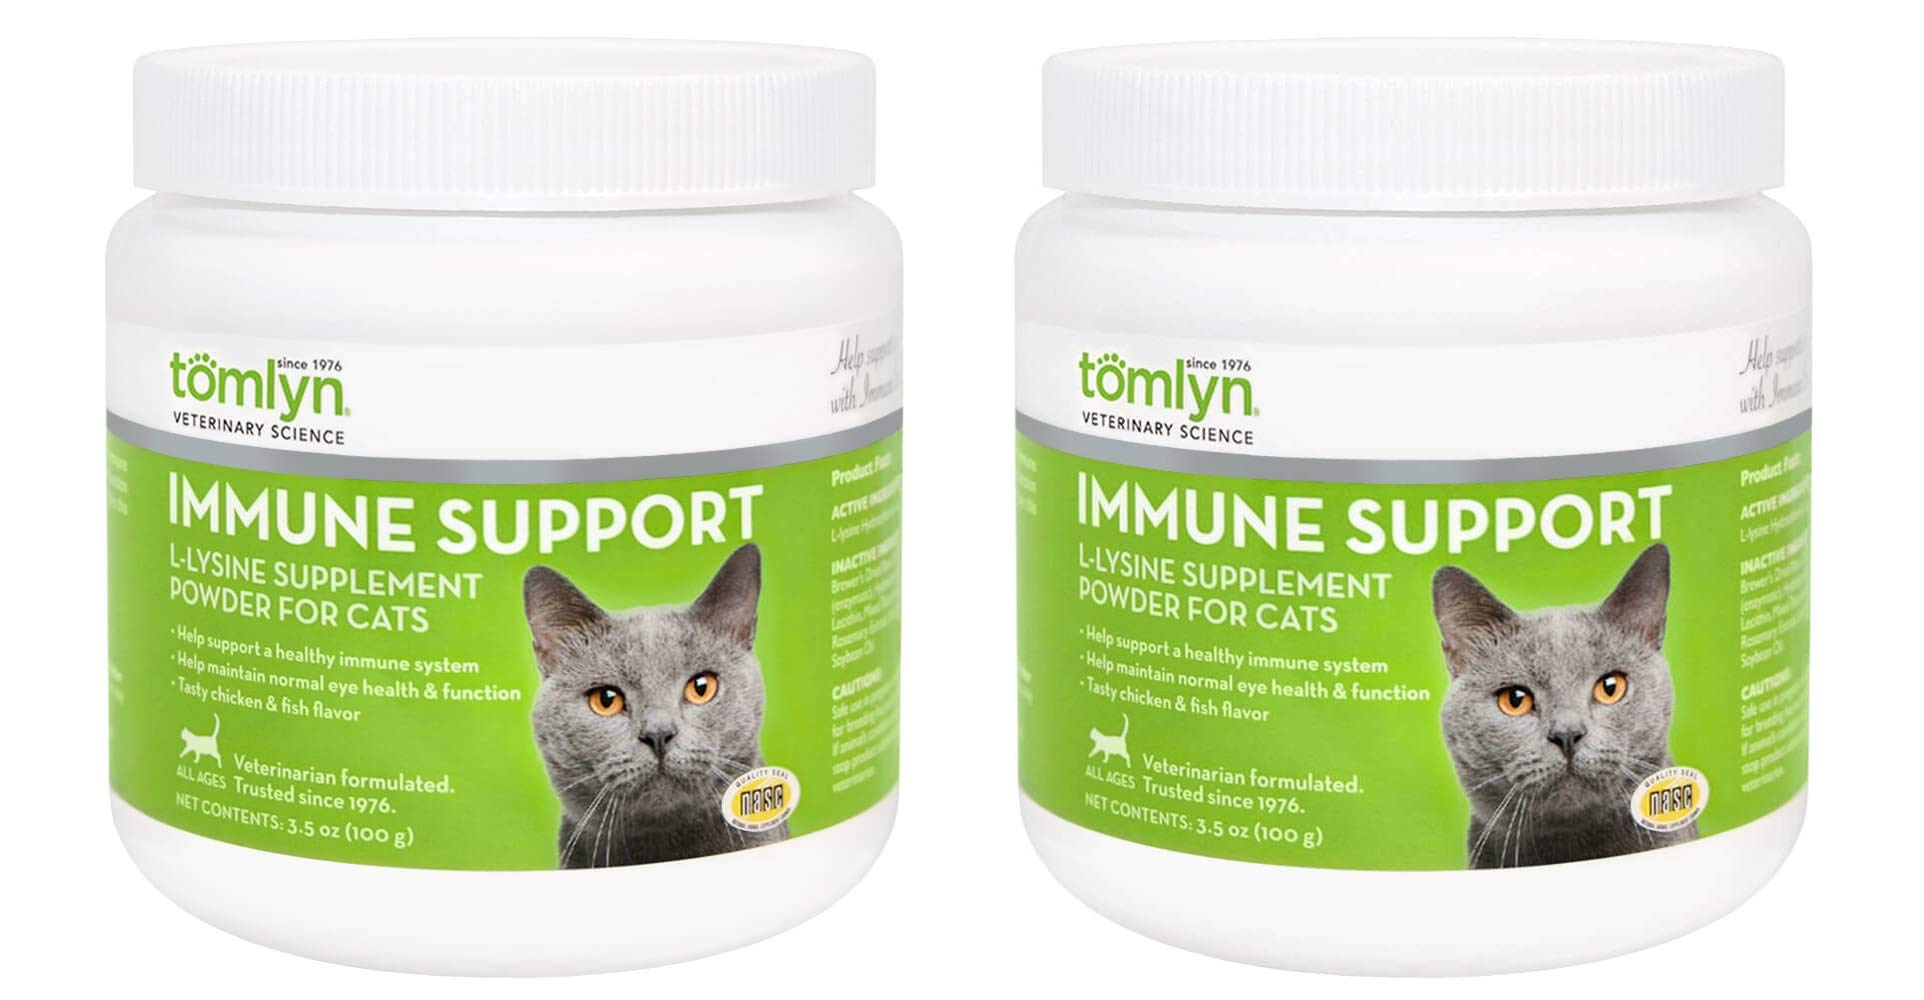 Tomlyn 2 Pack of Immune Support L-Lysine Powder, 100 Grams each, for Cats, Supports Respiratory and Eye Health